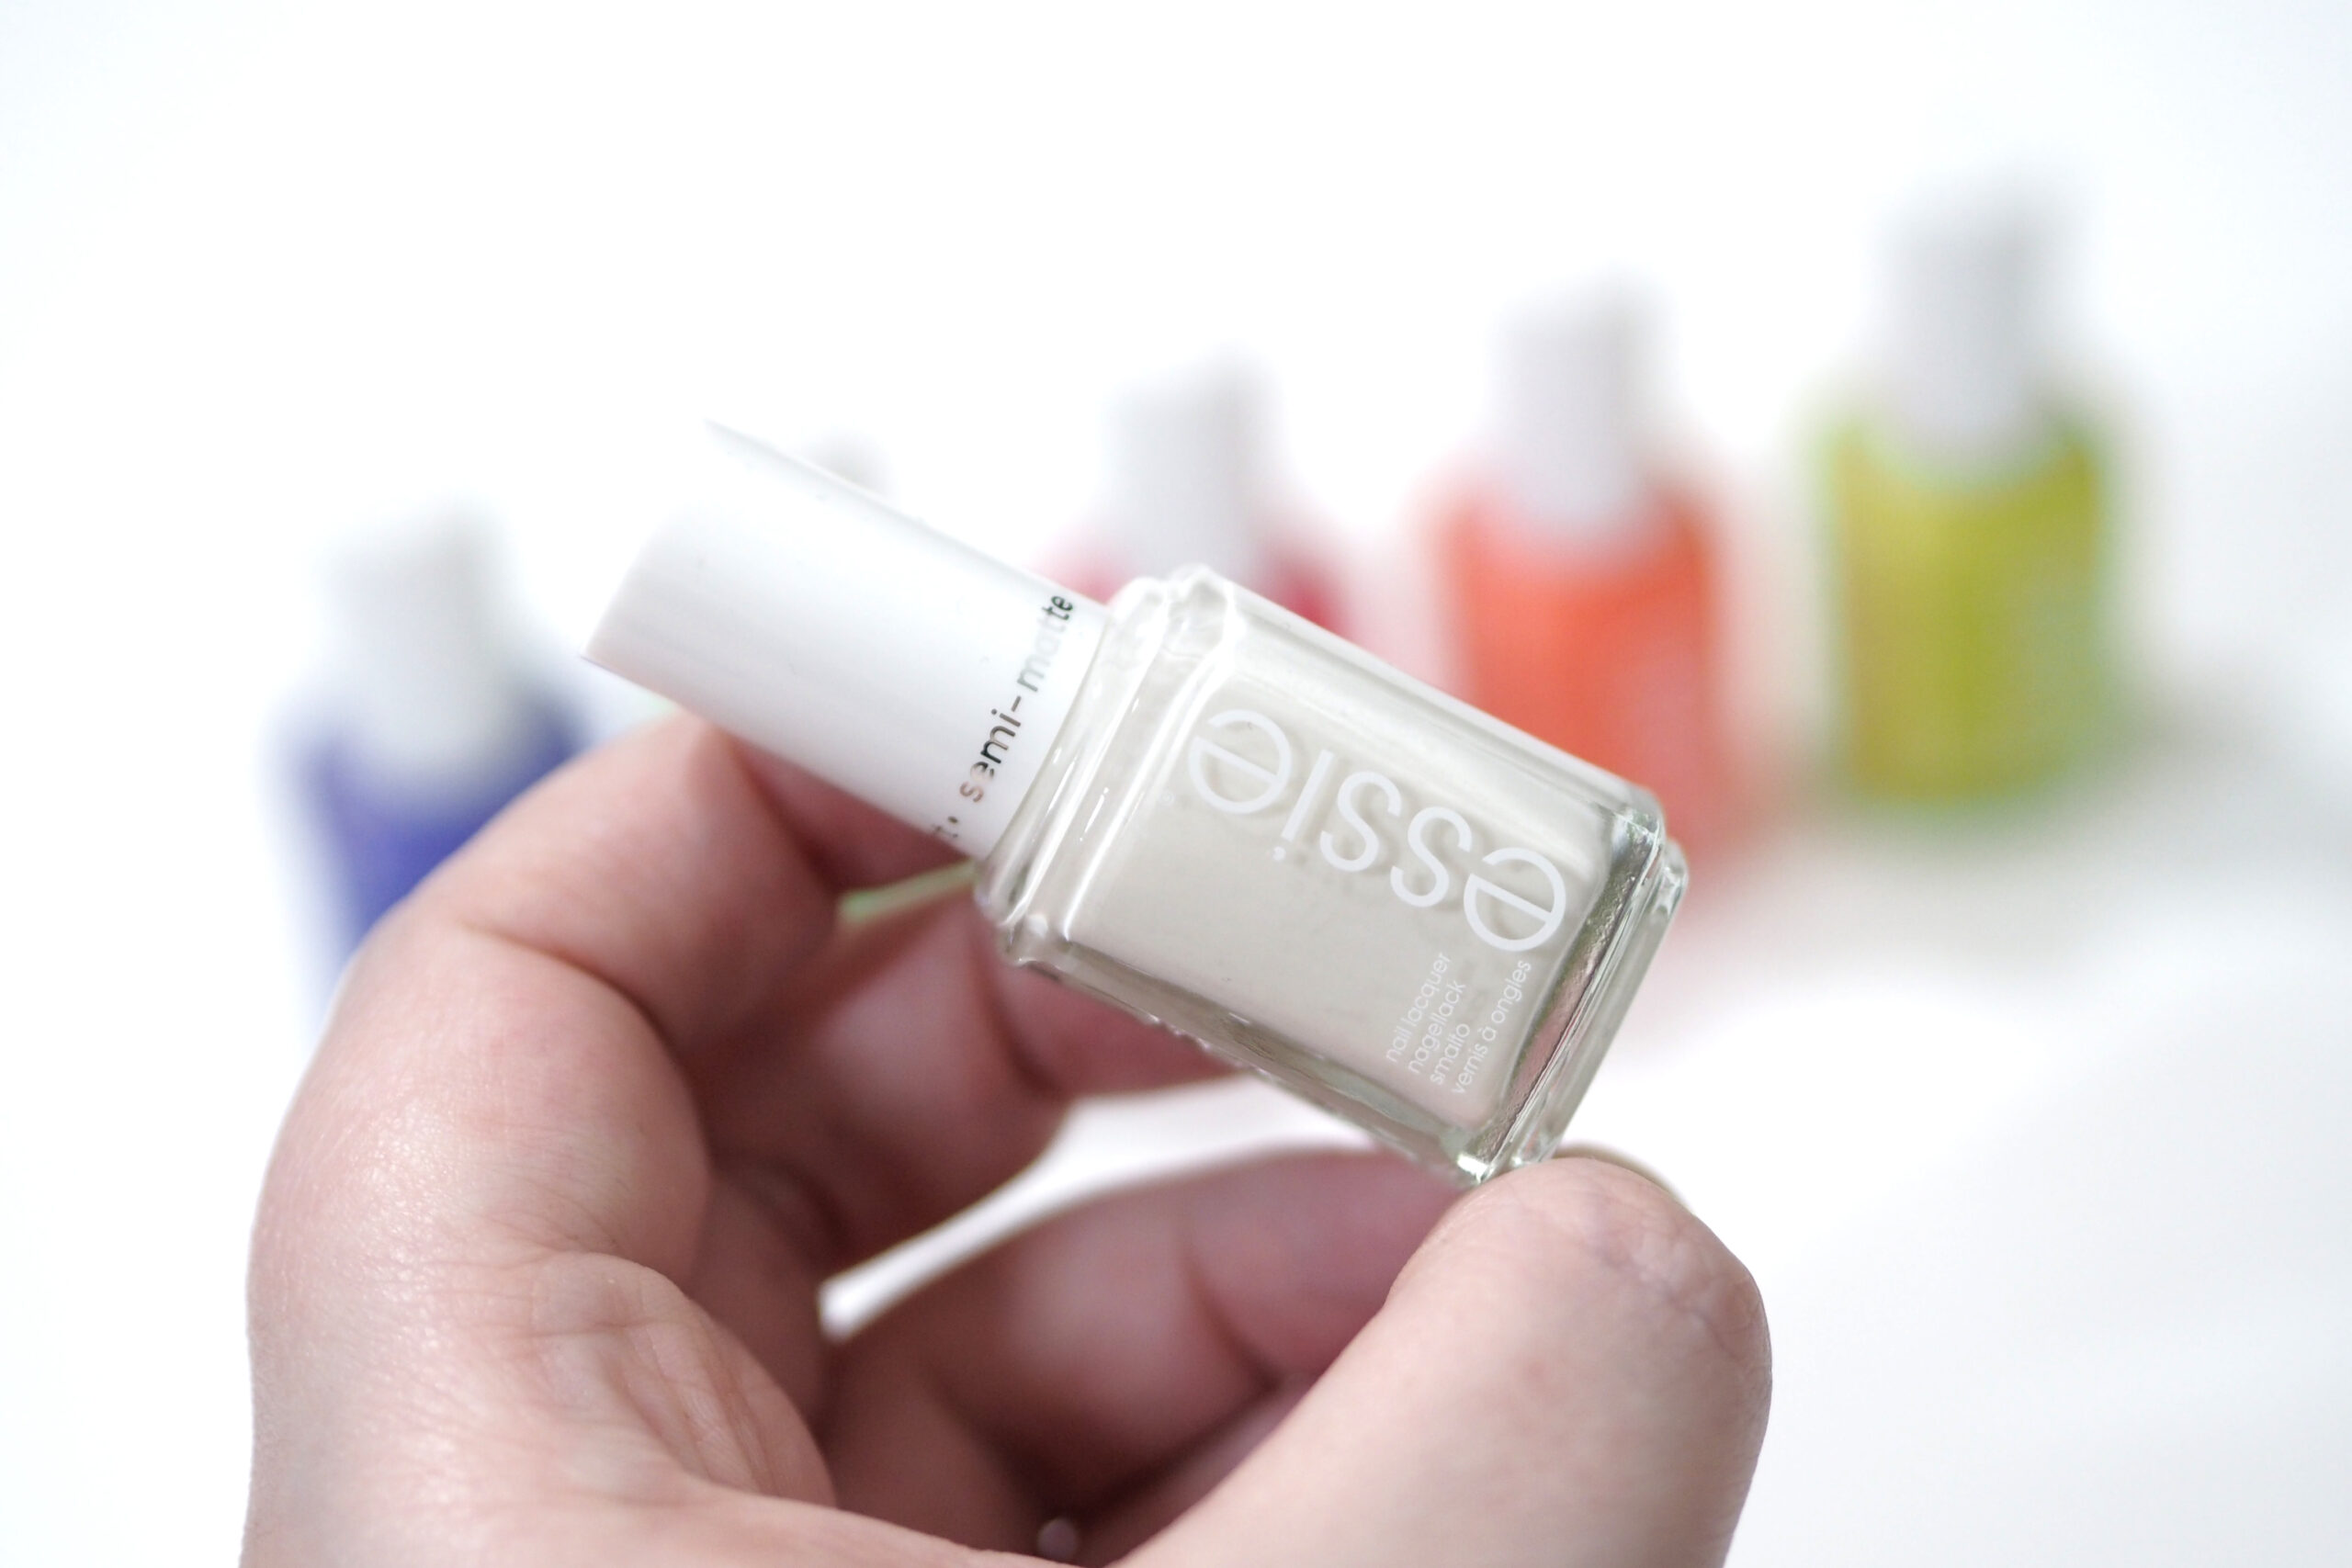 Essie Have A Ball Nail Polish Collection Review / Swatches